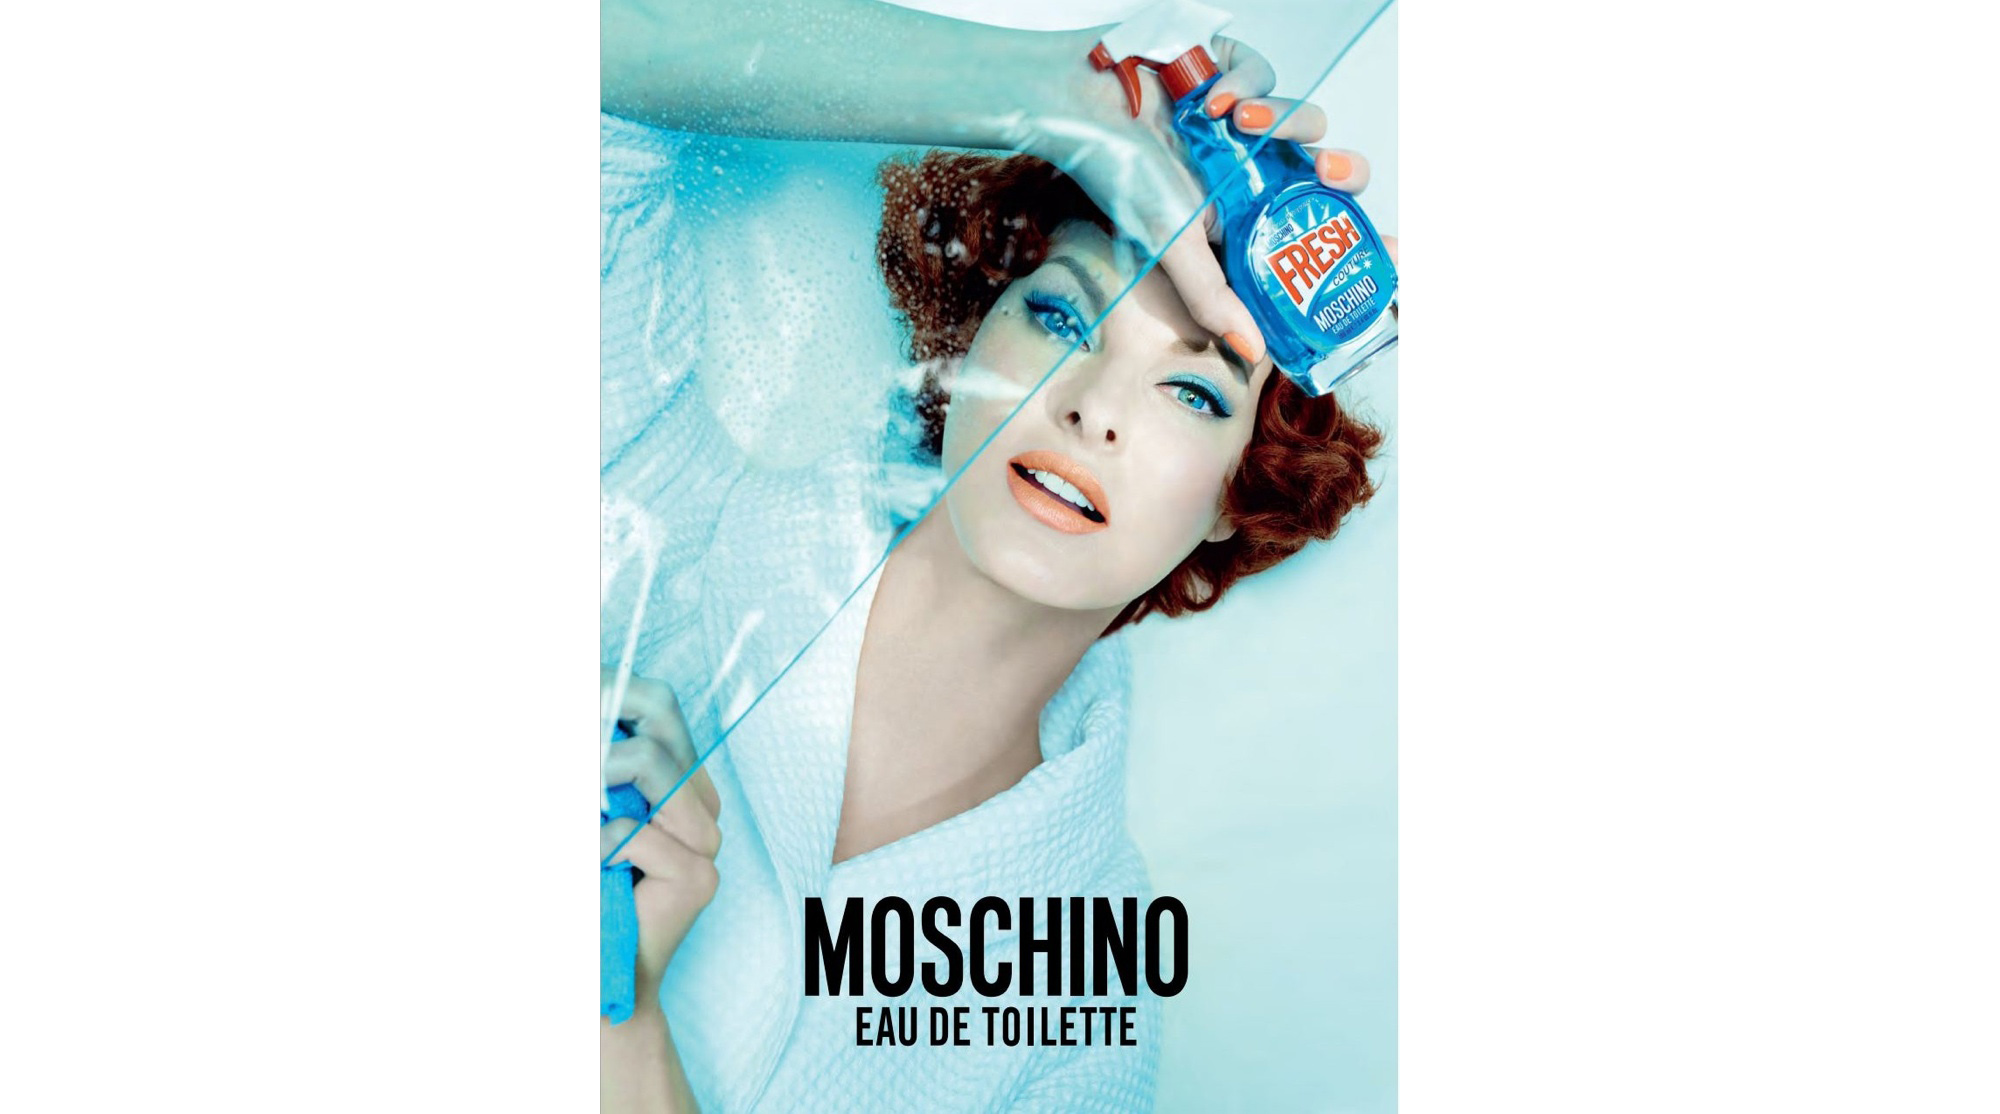 Moschino-Fresh-Couture-Fragrance-Ad-Campaign02.jpg